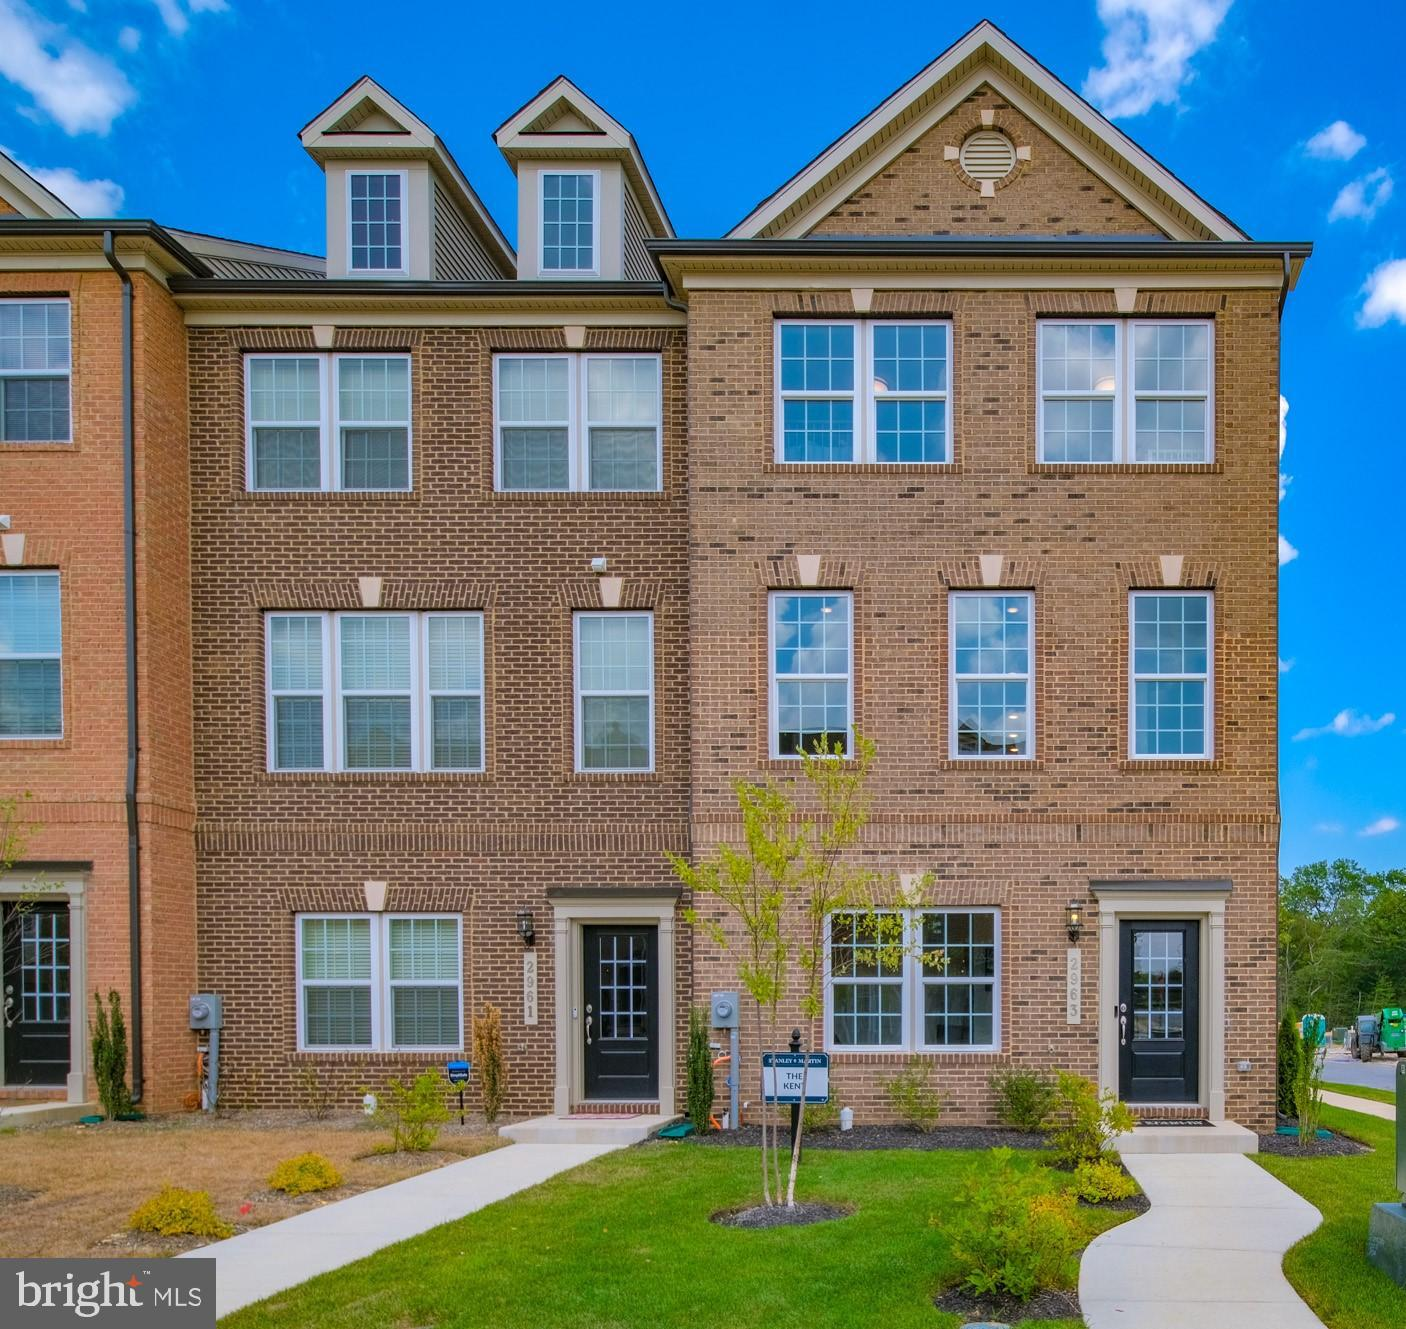 Take a gander at this gorgeous rear entry garage town home that offers a secure and convenient priva